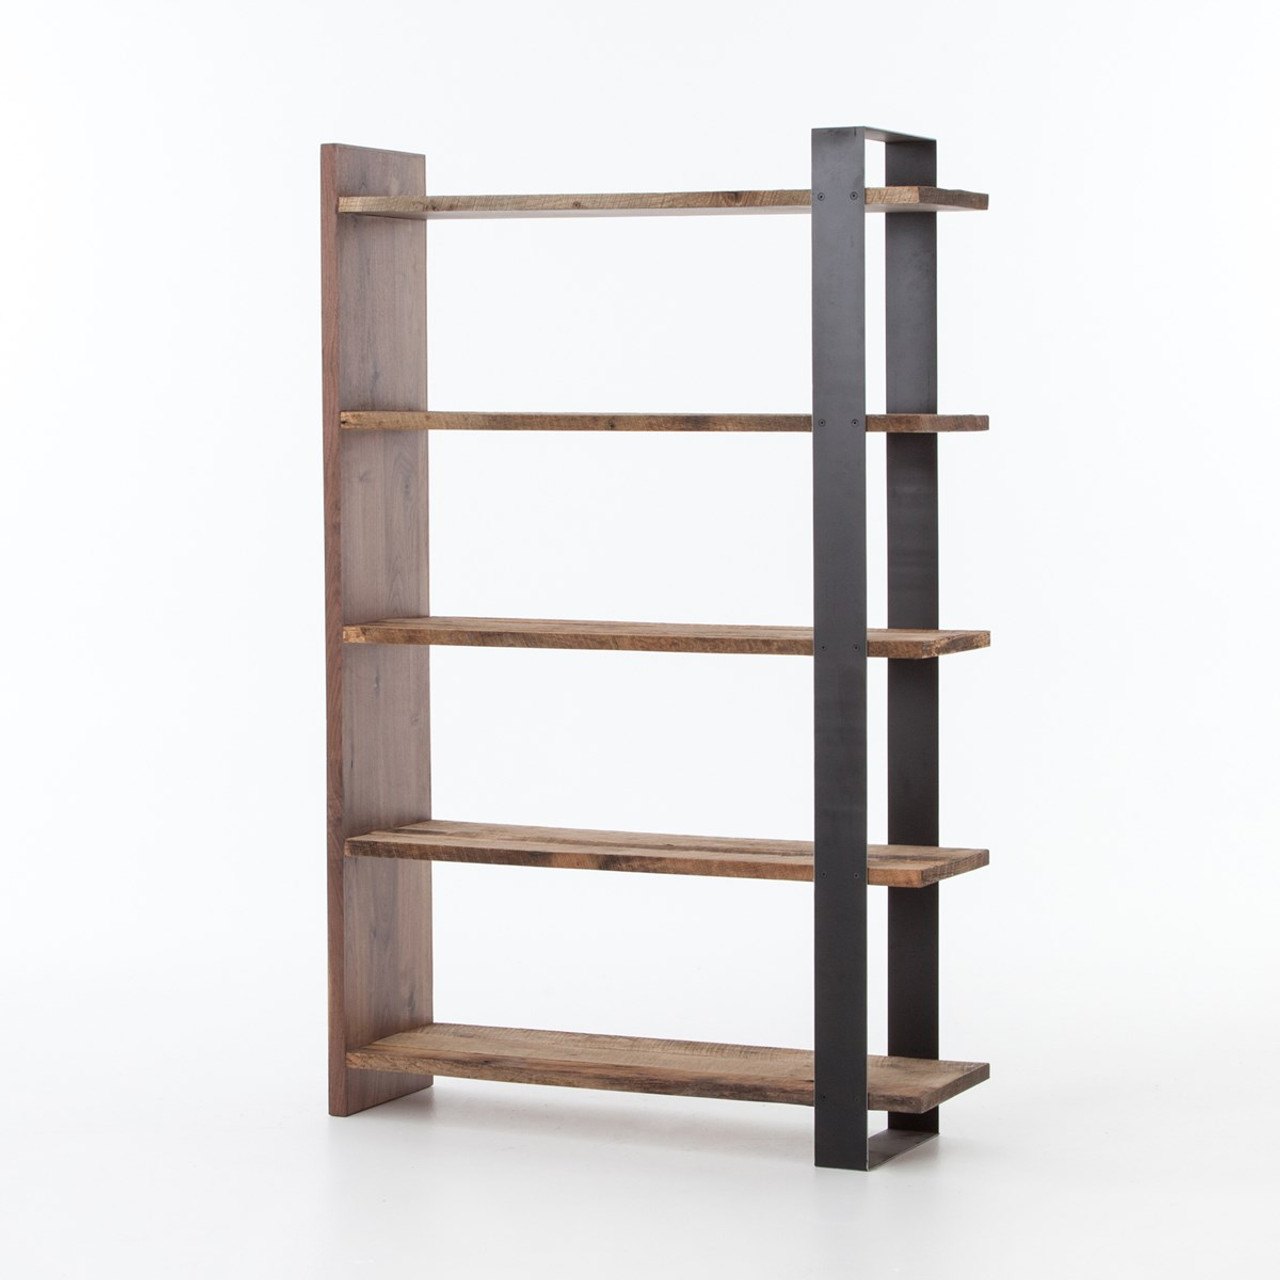 Anderson Industrial Rustic Oak Wood and Metal Bookcase  Quick view   Industrial Furniture. Modern   Vintage Industrial Style Furniture   Zin Home